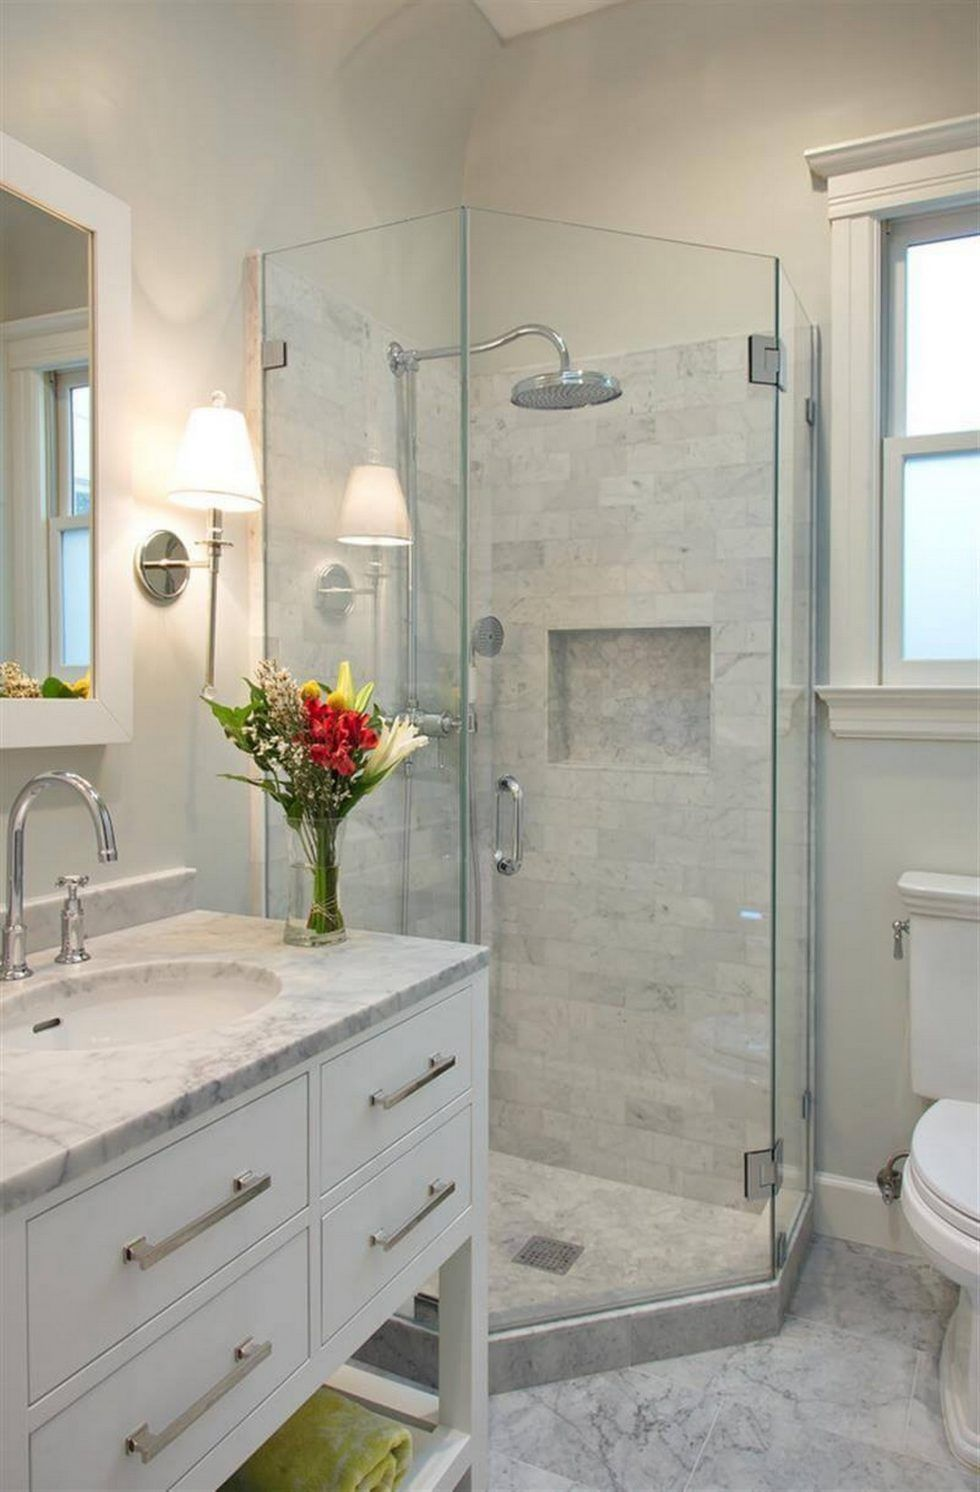 32 Inspiring Small Bathroom Design Ideas That Create A Special Attraction For Your Pleasure Goodnewsarchitecture In 2021 Small Bathroom Small Bathroom Remodel Simple Bathroom Small bathroom design pictures